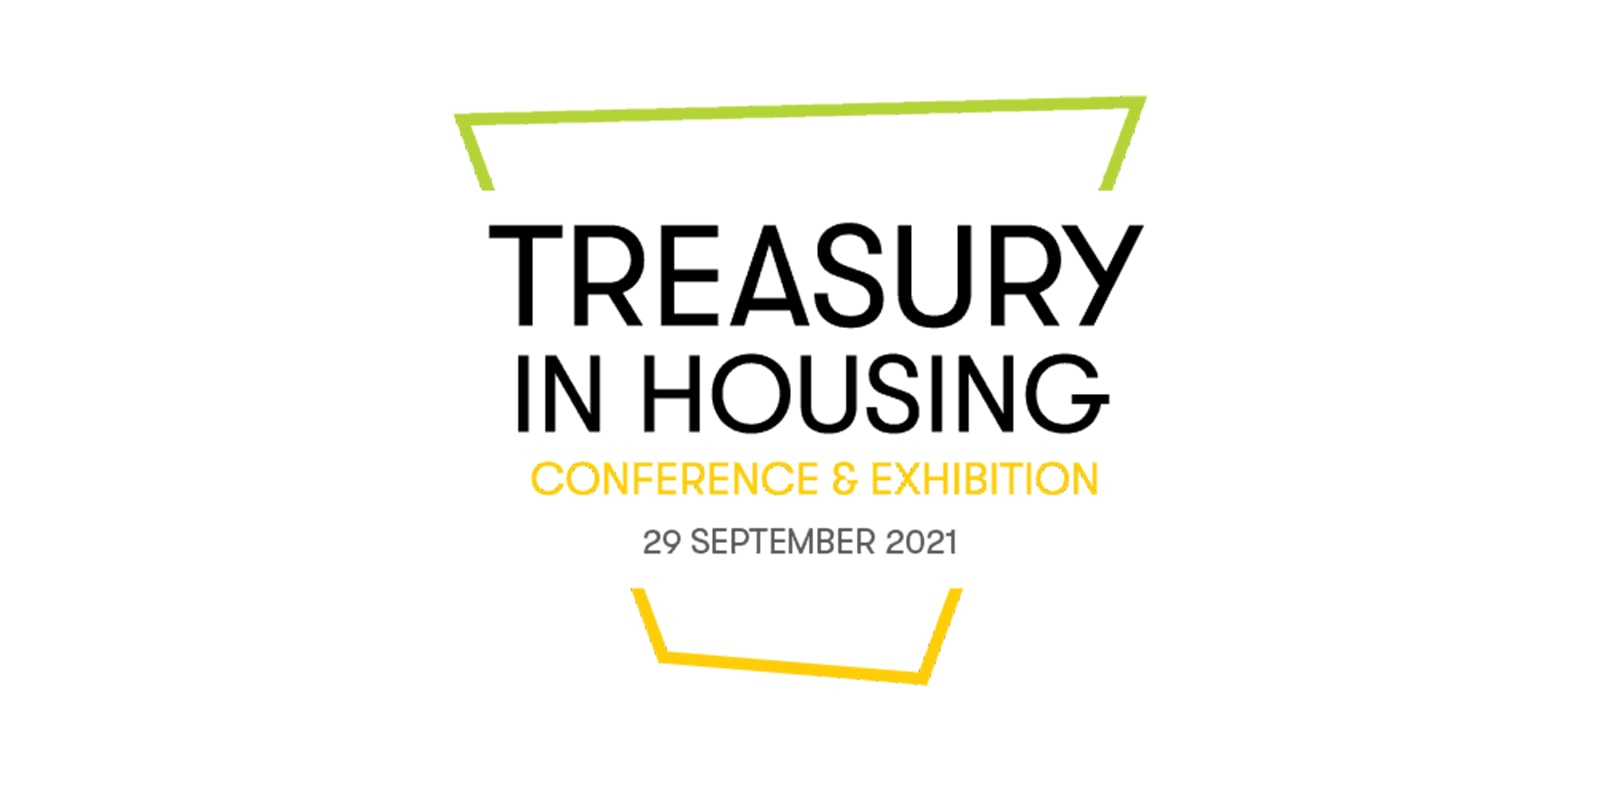 National Housing Federation – Treasury in Housing Conference and Exhibition 2021